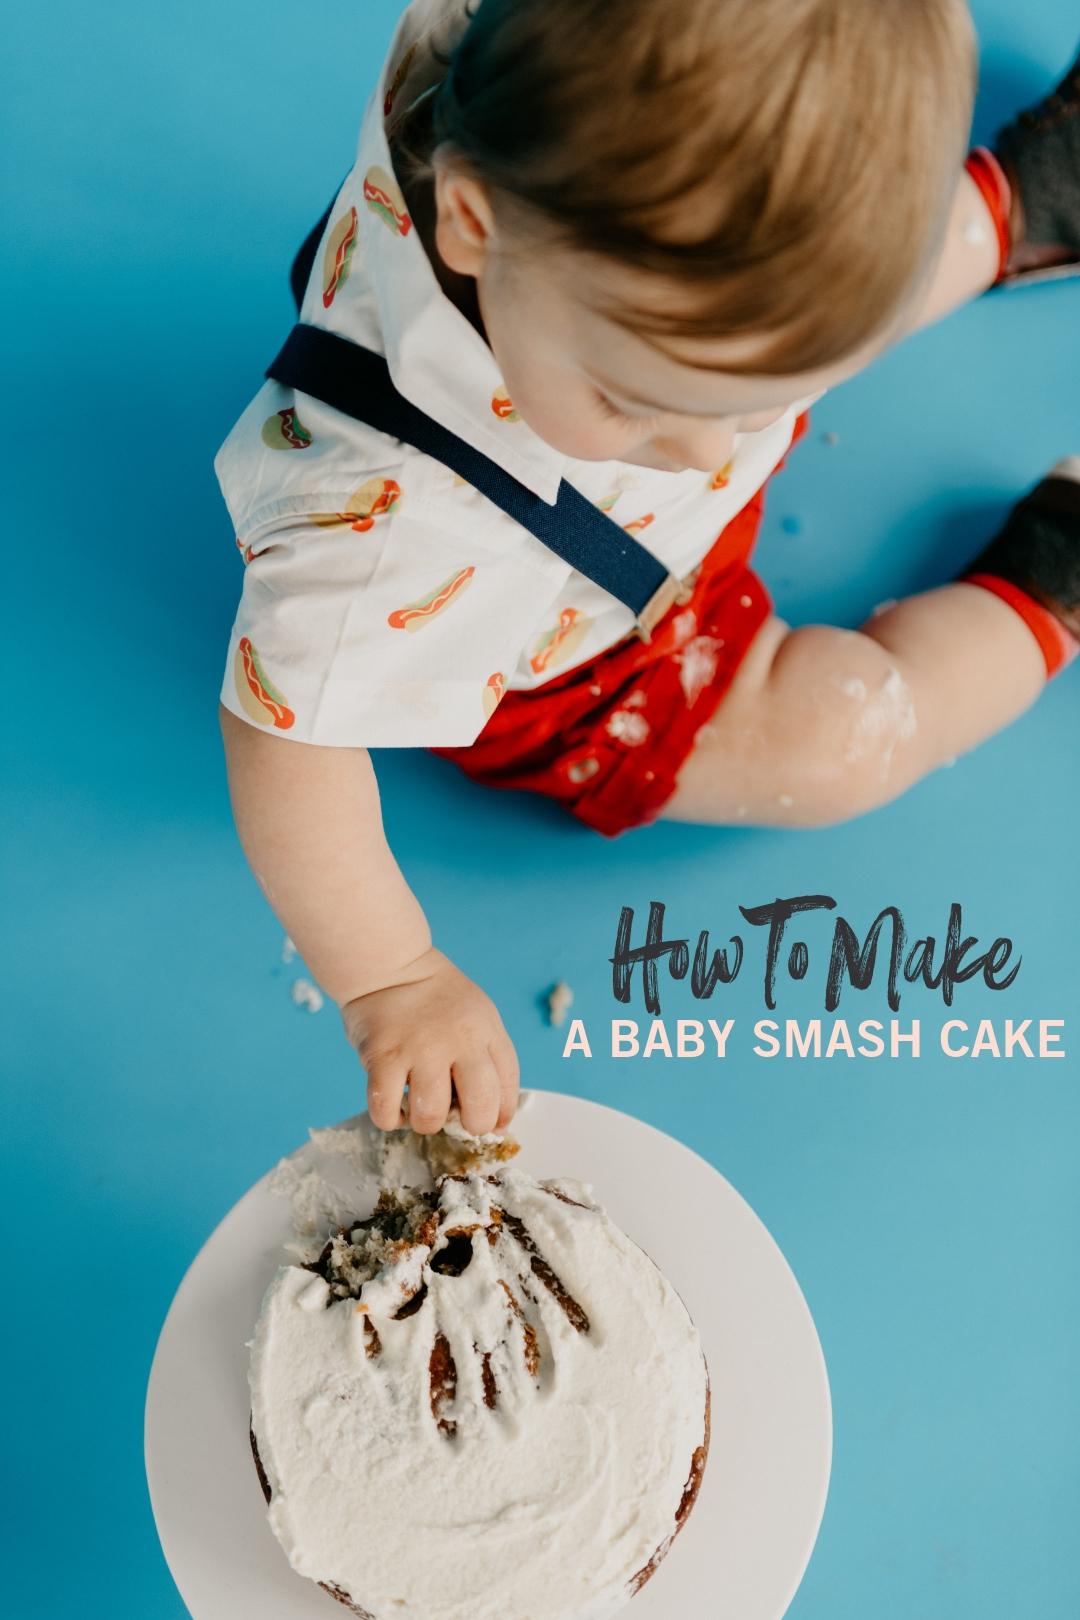 Marvelous How To Make A Baby Smash Cake A Simple 1St Birthday Party Sweetphi Funny Birthday Cards Online Alyptdamsfinfo